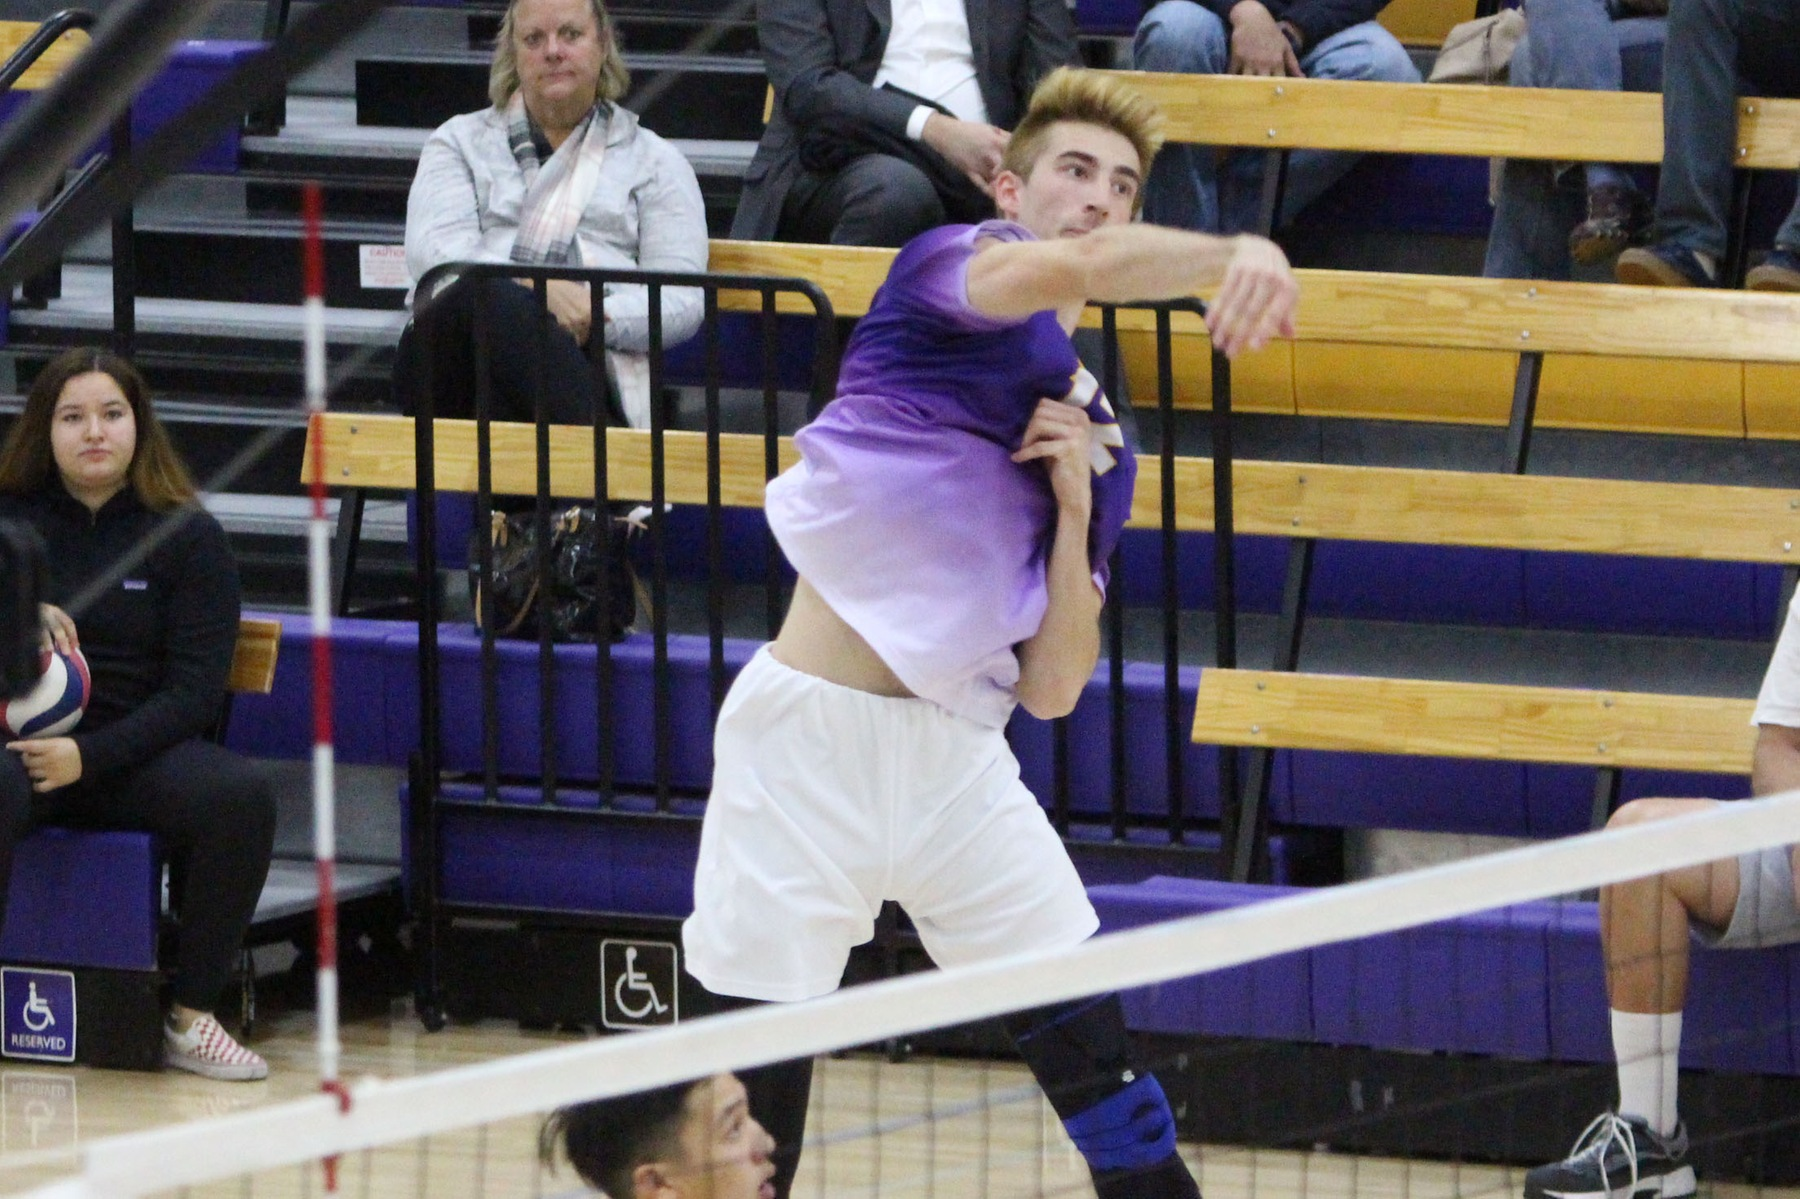 Andrew Reina tallied eight kills as the Kingsmen defeated the Arcadia Knights 3-0. (Photo: Danielle Roumbos)